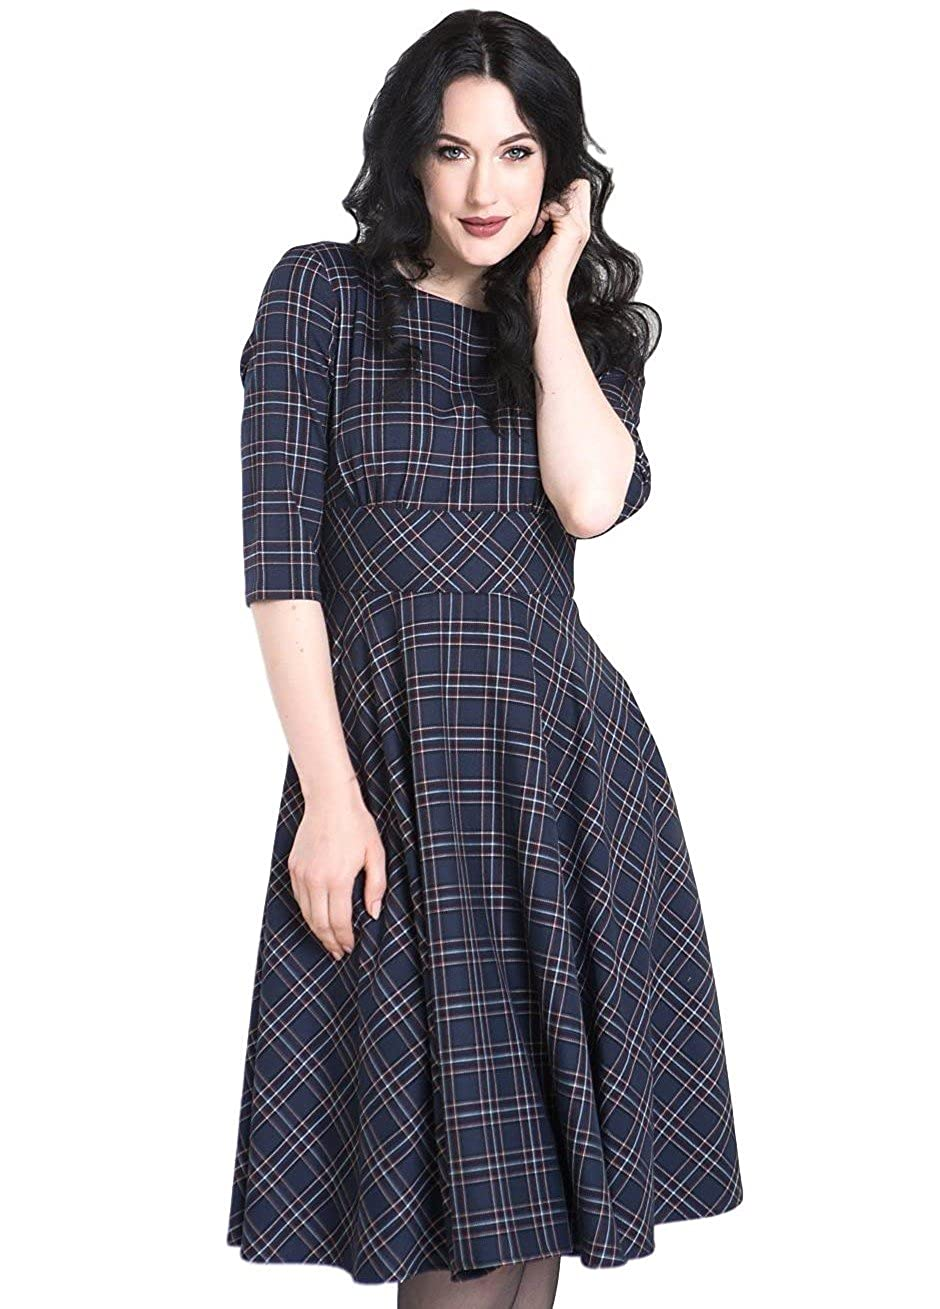 Hell Bunny Peebles Tartan 1950's Vintage Retro Dress